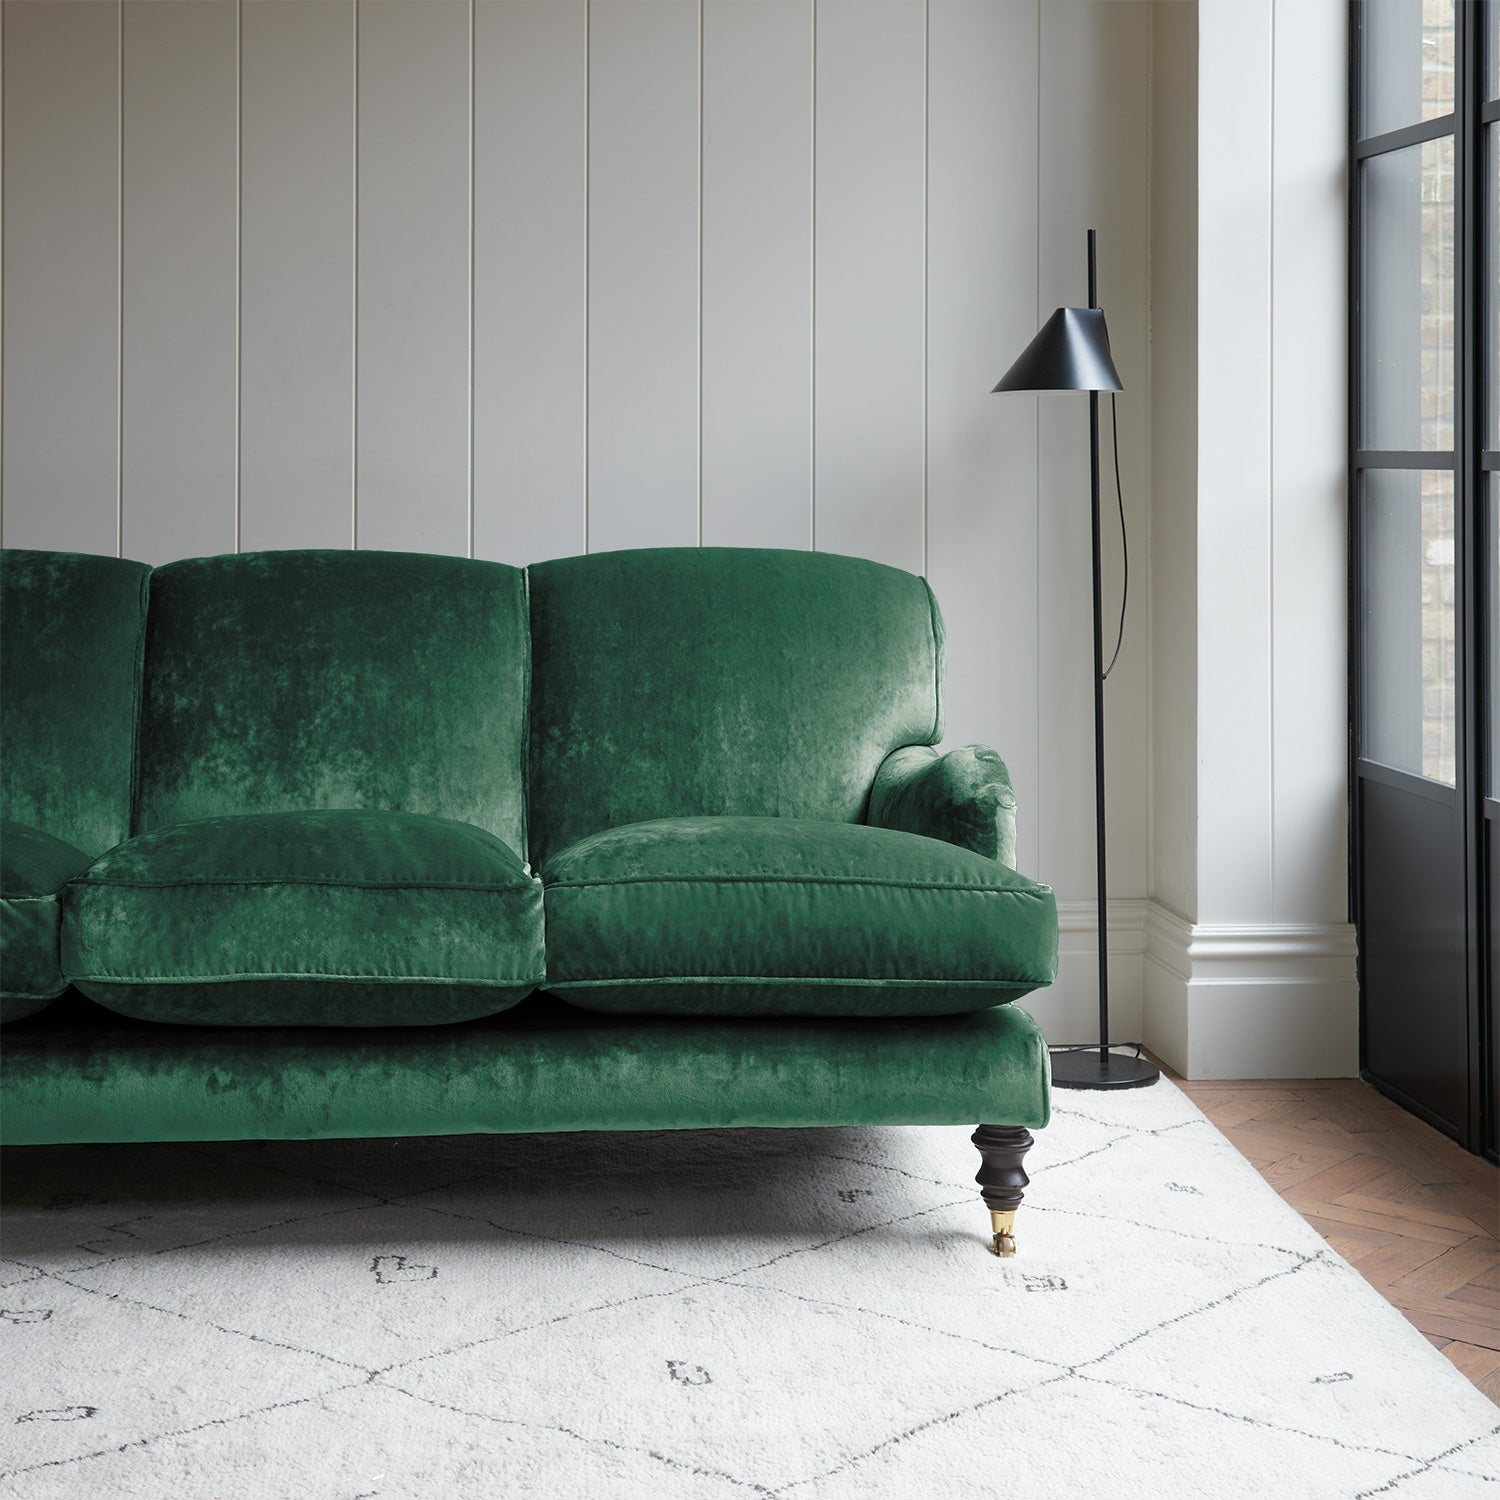 Velvet sofa in a dark green crushed velvet upholstery fabric